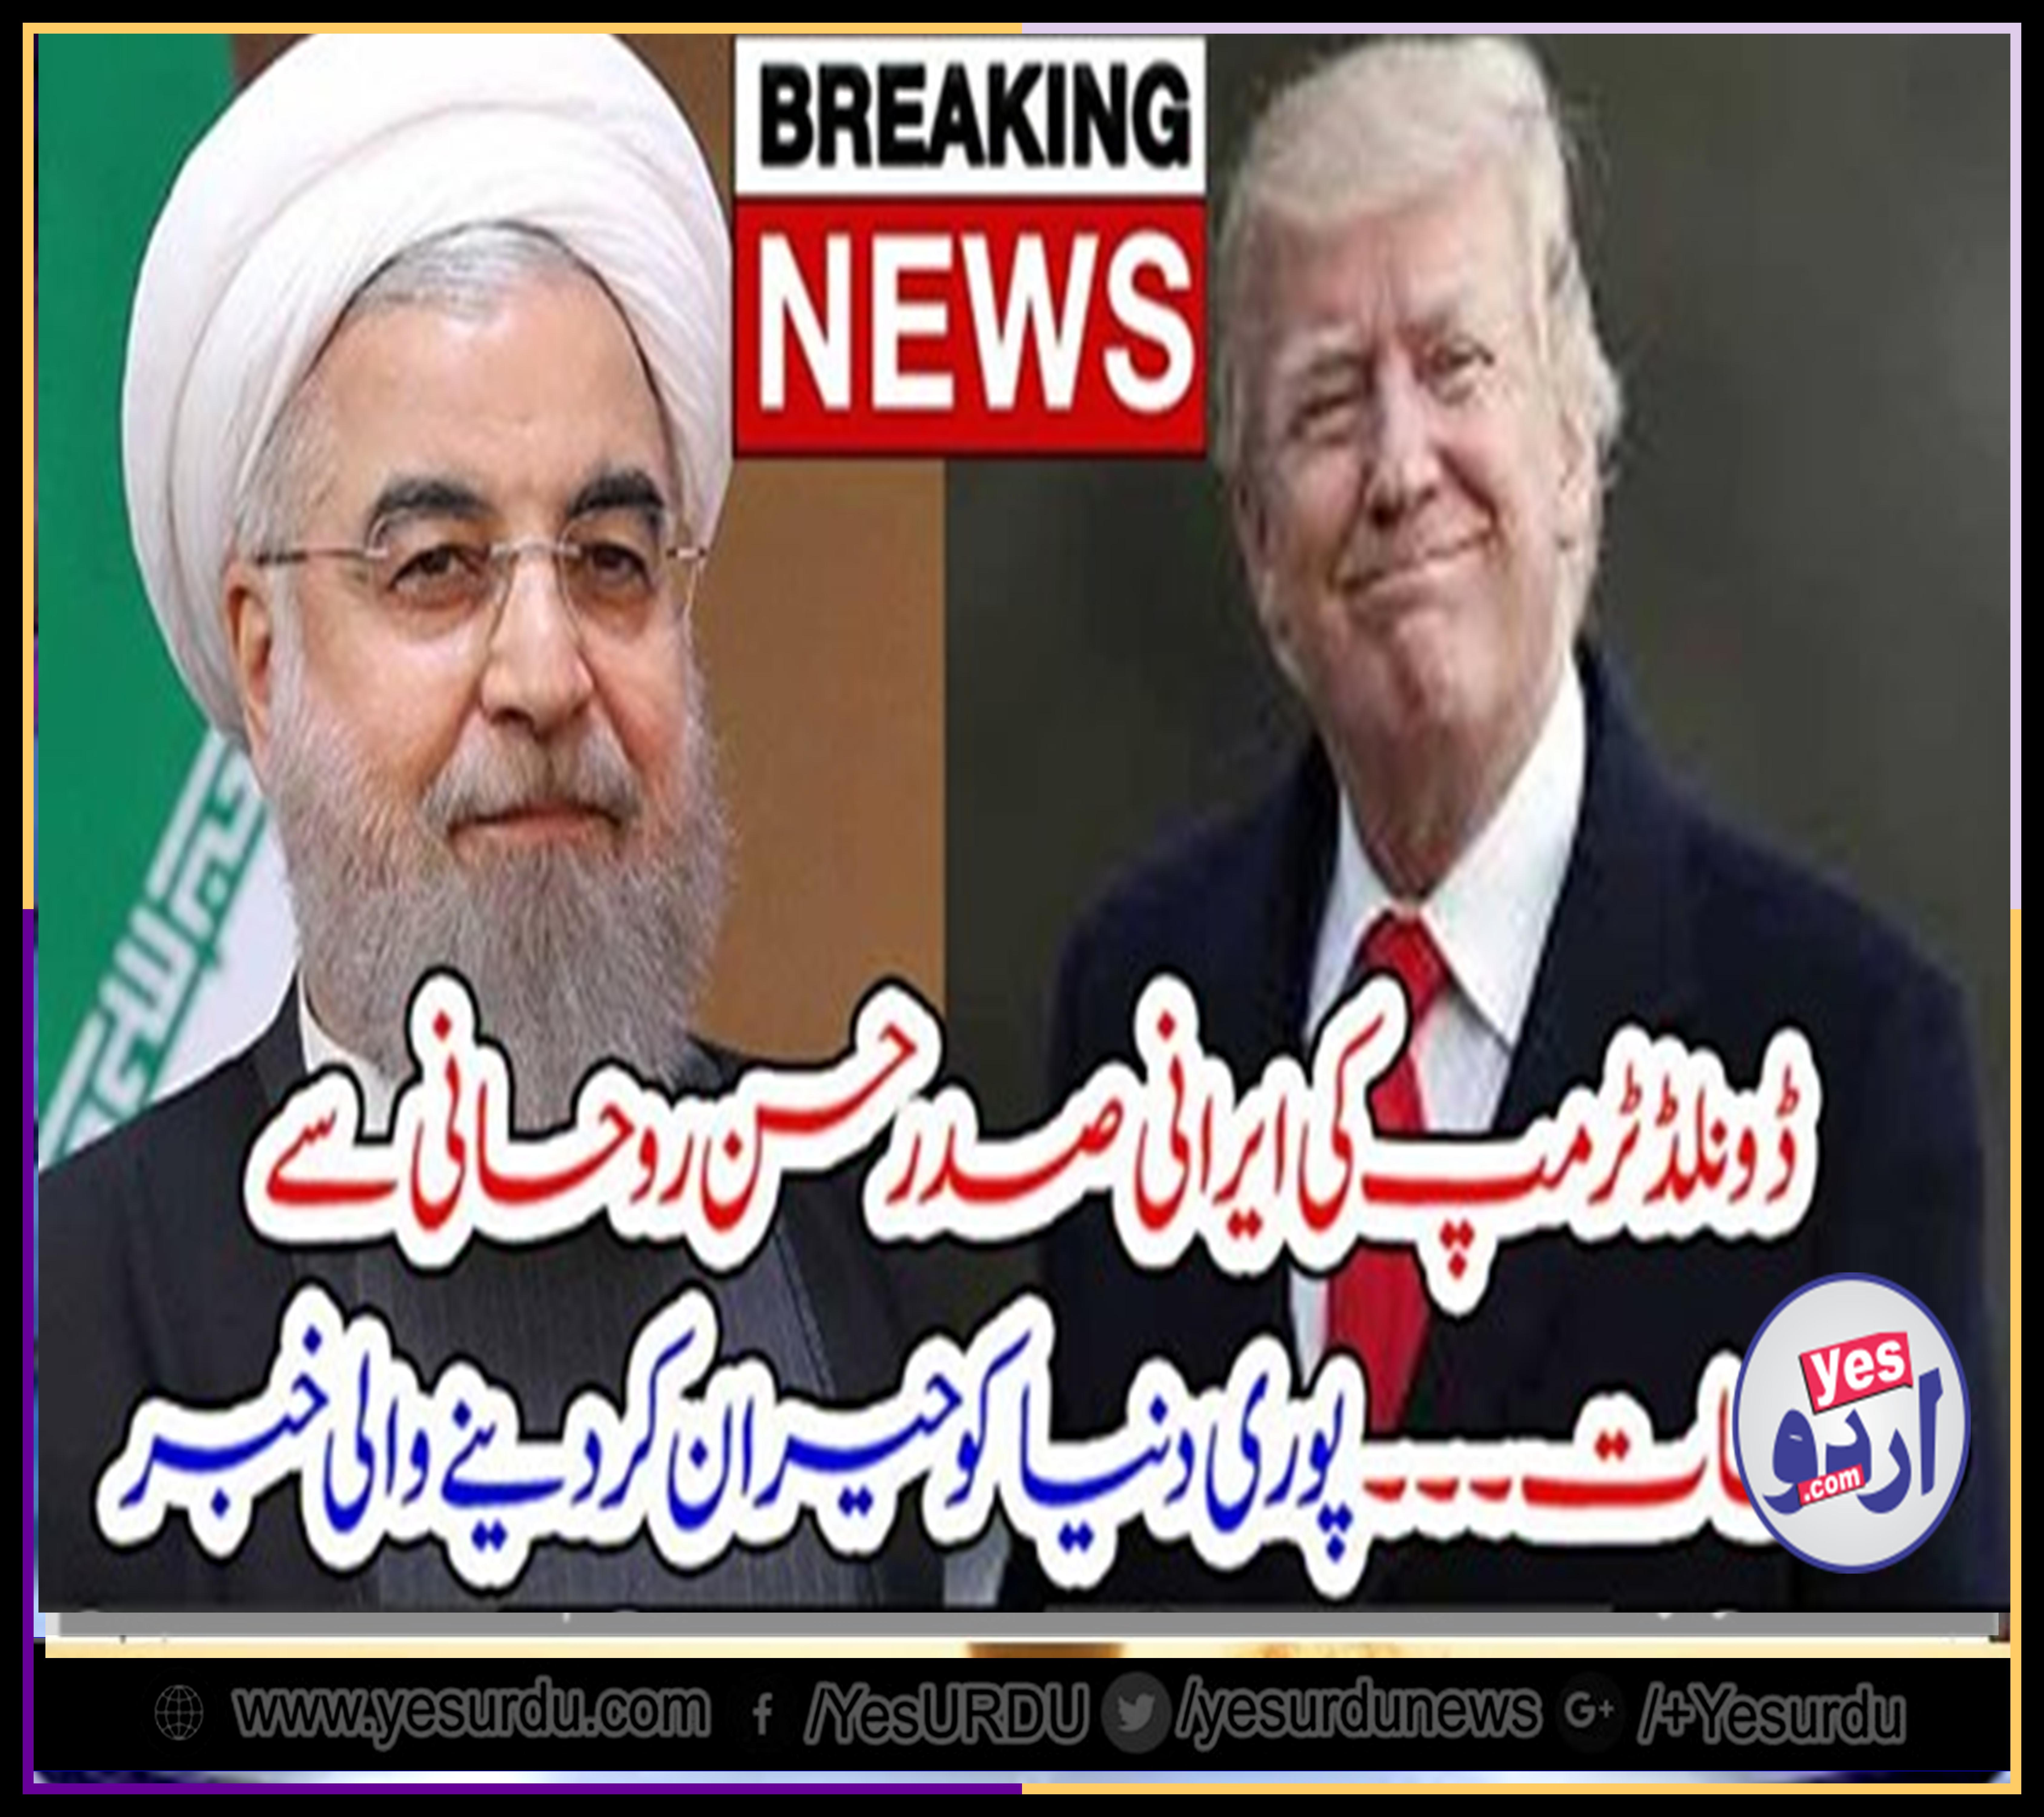 DONALD TRUMP, MEETS, IRANI, PRESIDENT, HASSAN ROOHIANI, BREAKING, NEWS